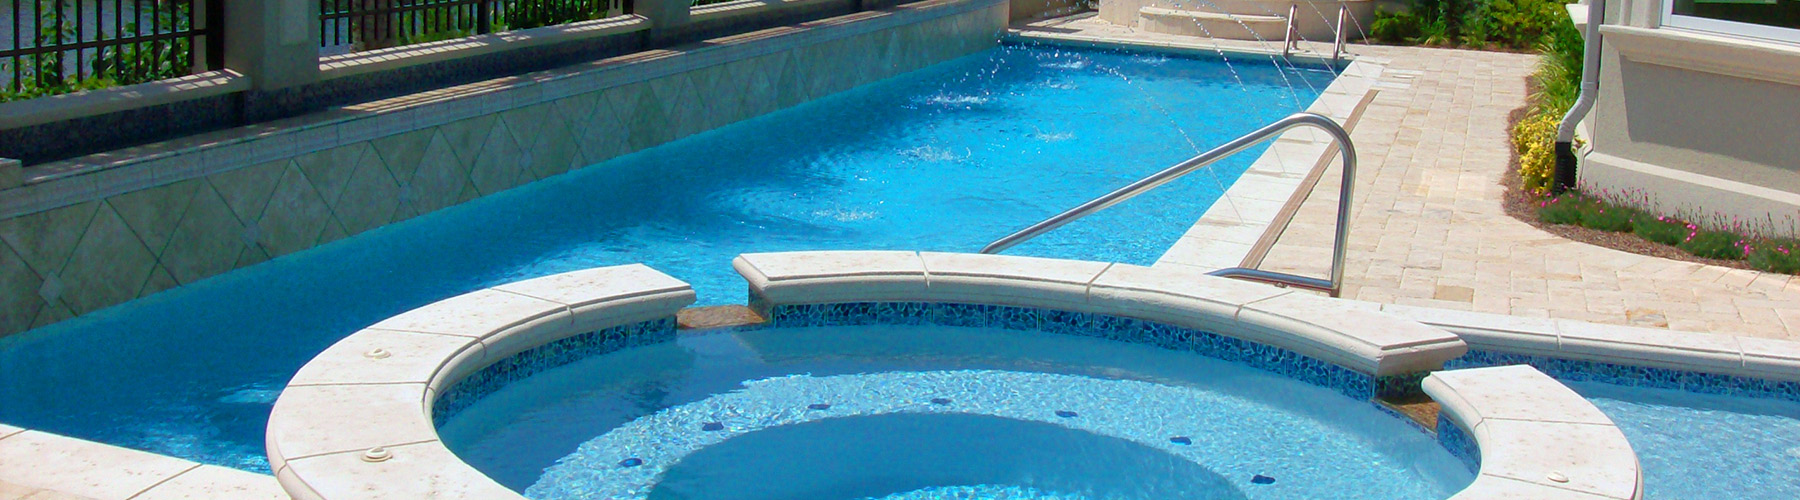 Swimming Pool Questions